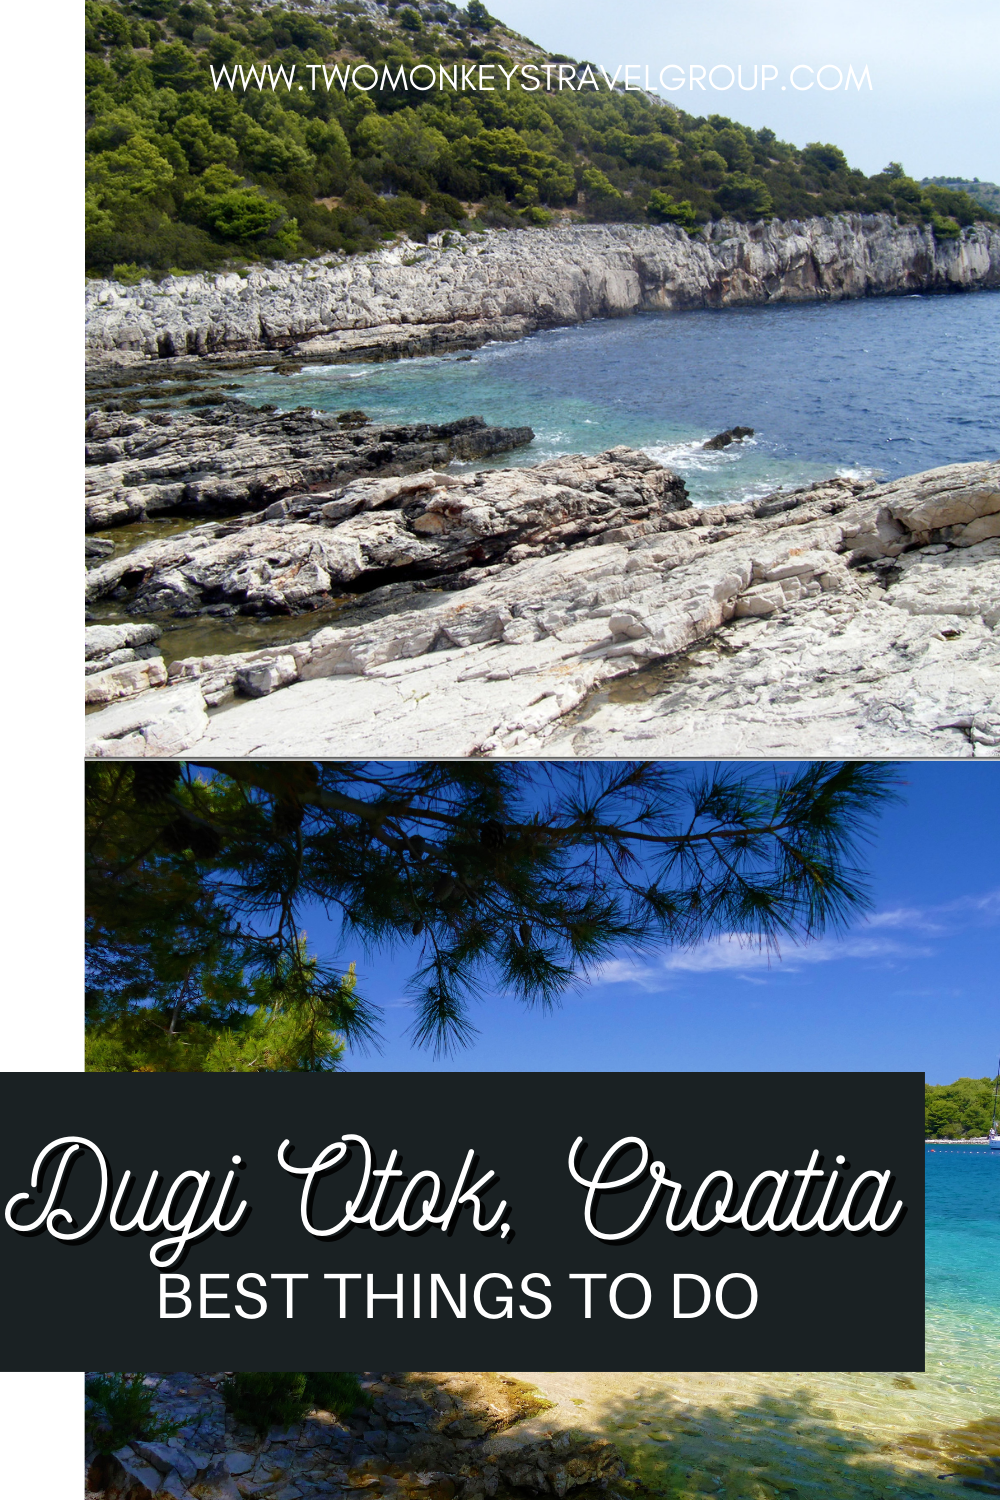 5 Best Things to do in Dugi Otok, Croatia [with Suggested Tours]